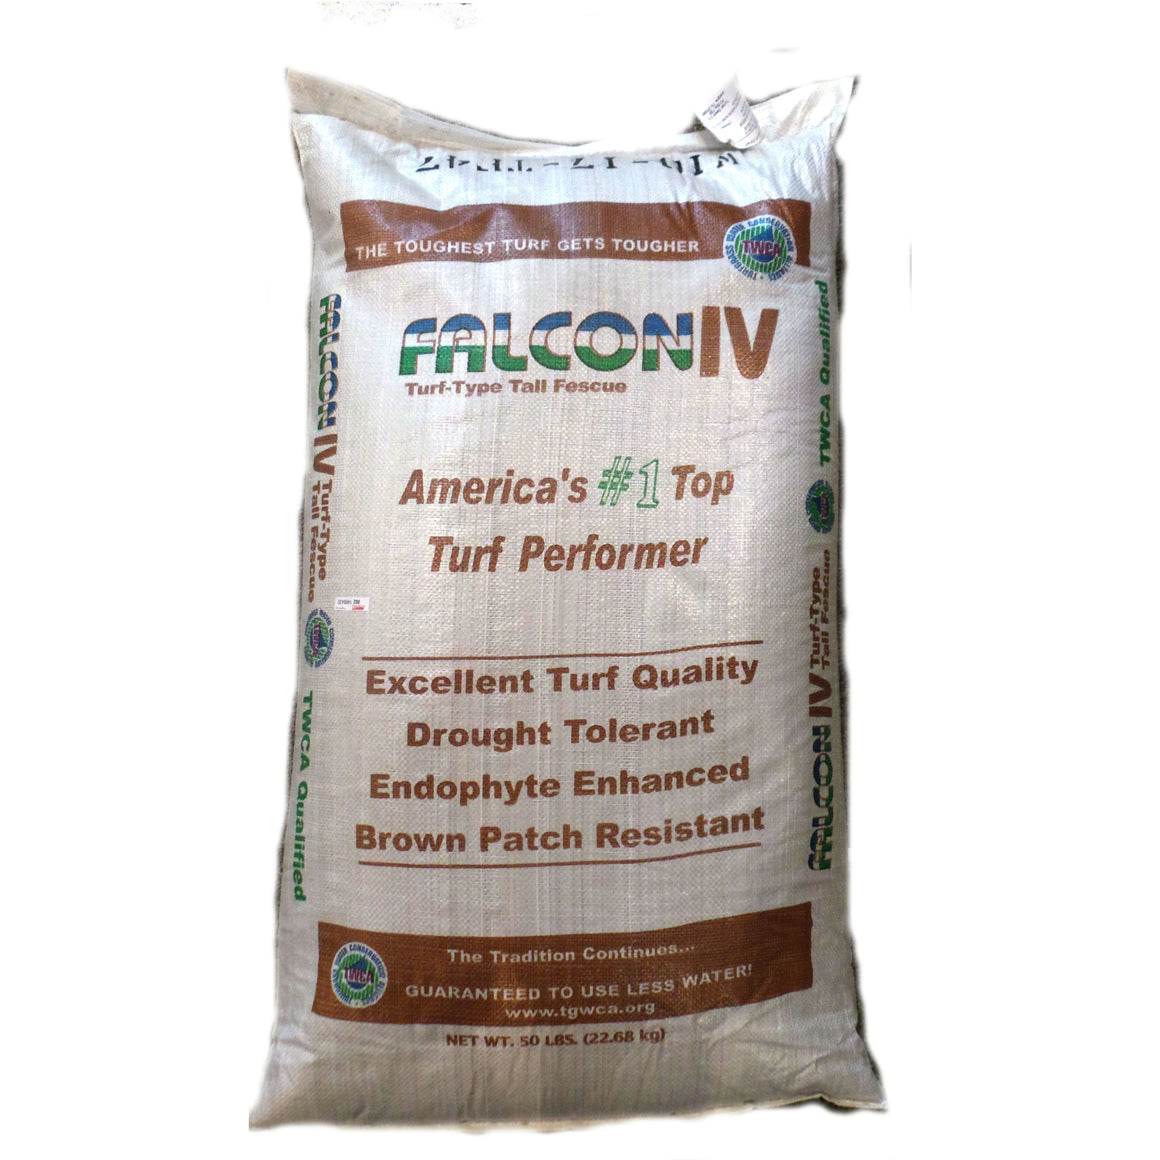 Falcon IV Turf Type Tall Fescue Grass Seed - 50 lbs.